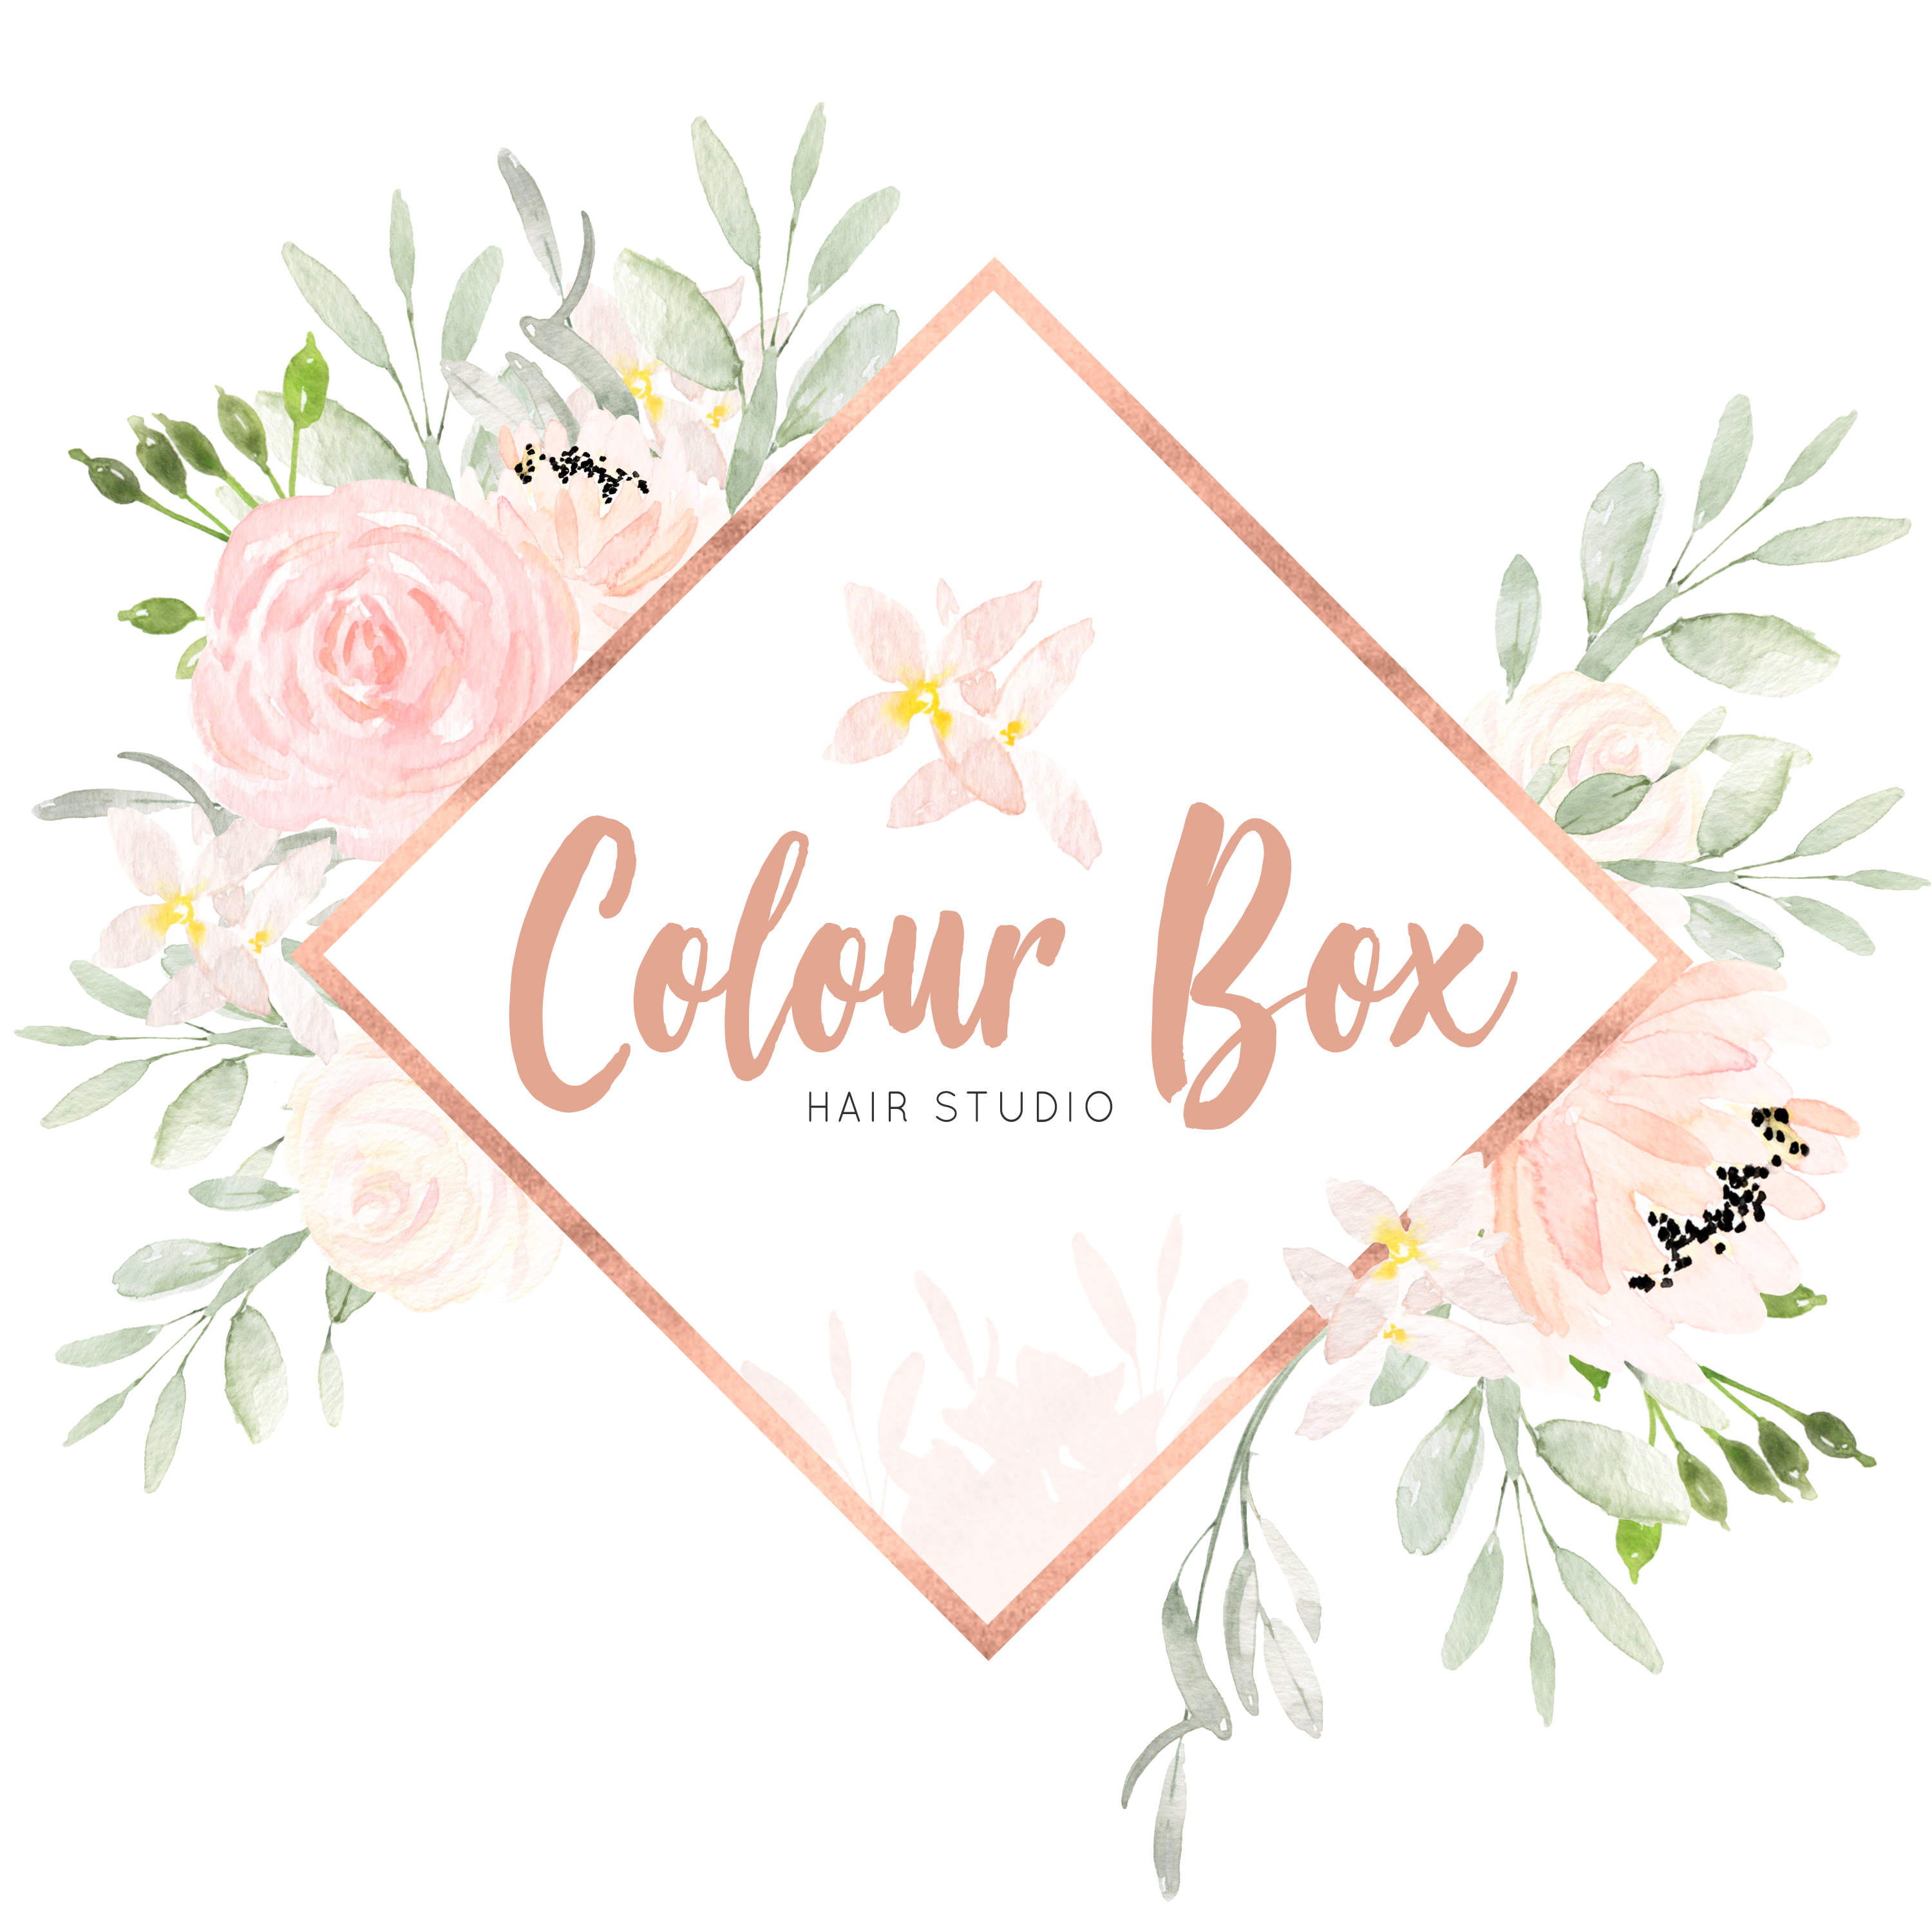 COLOUR BOX HAIR STUDIO